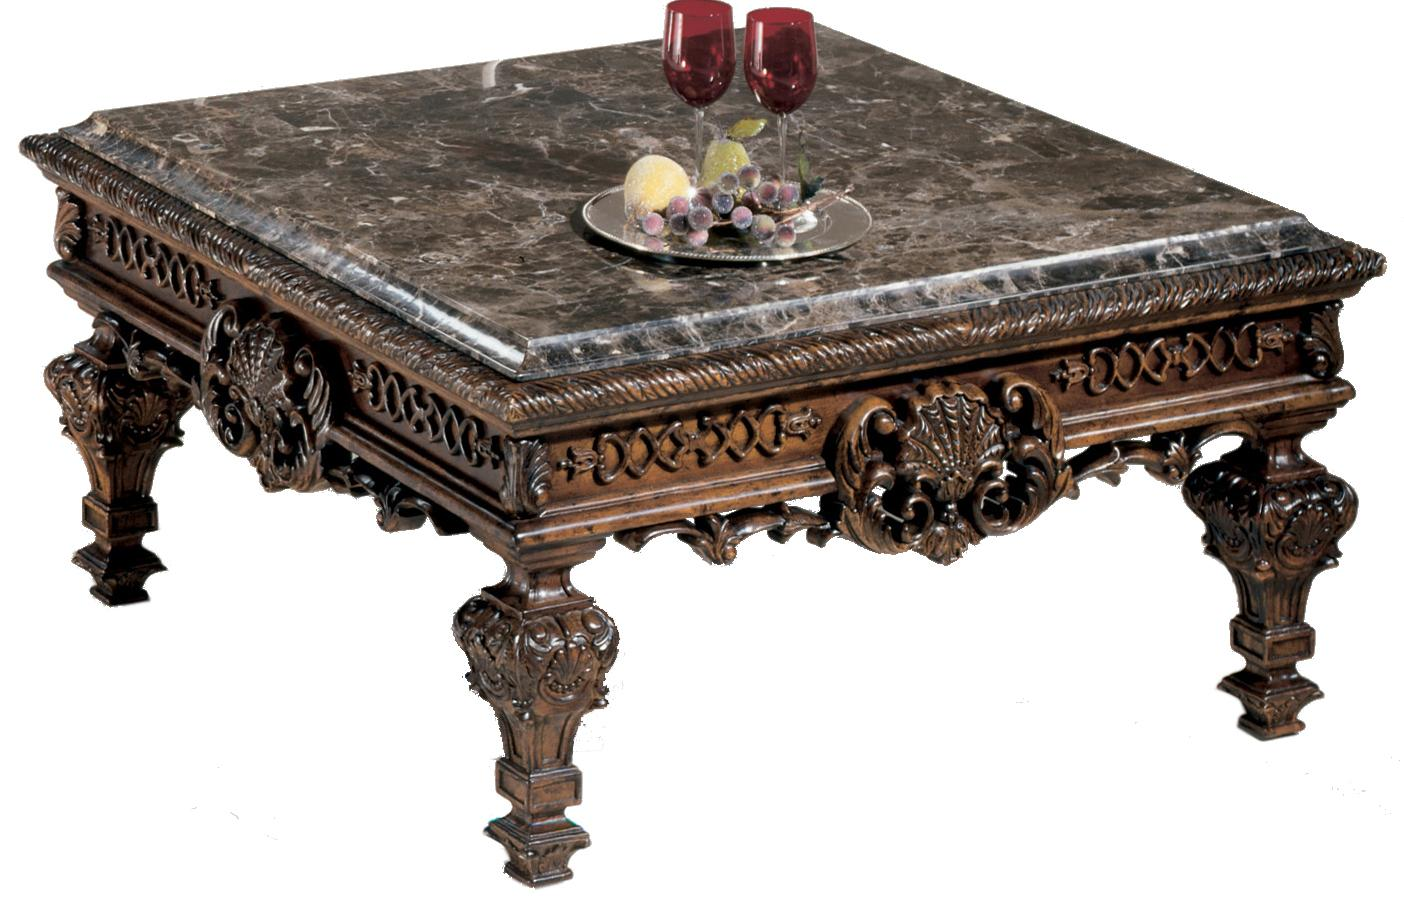 Ornate Square Cocktail Table With Stone Top By Signature Design By